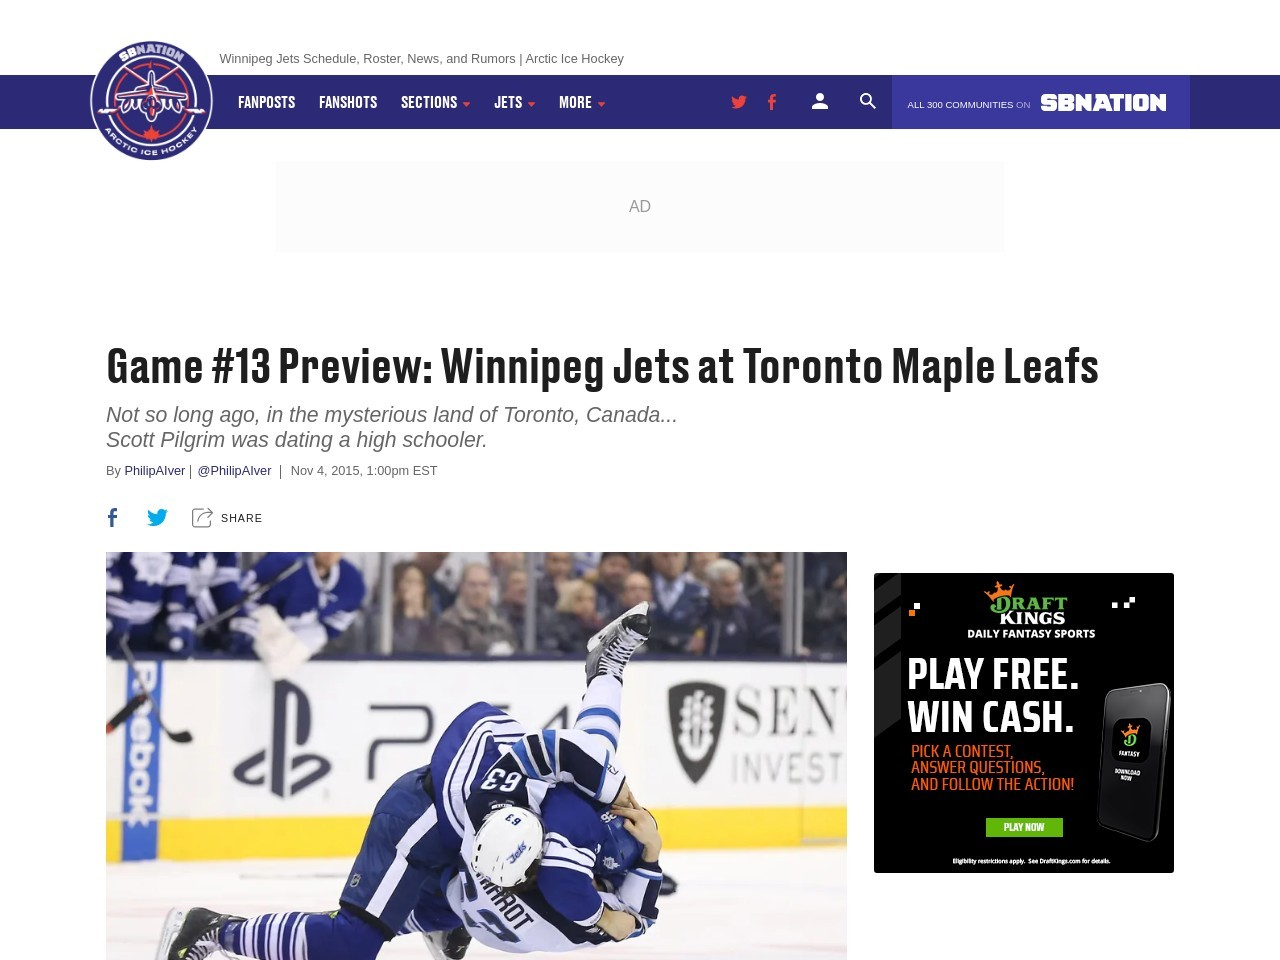 Game #13 Preview: Winnipeg Jets at Toronto Maple Leafs …